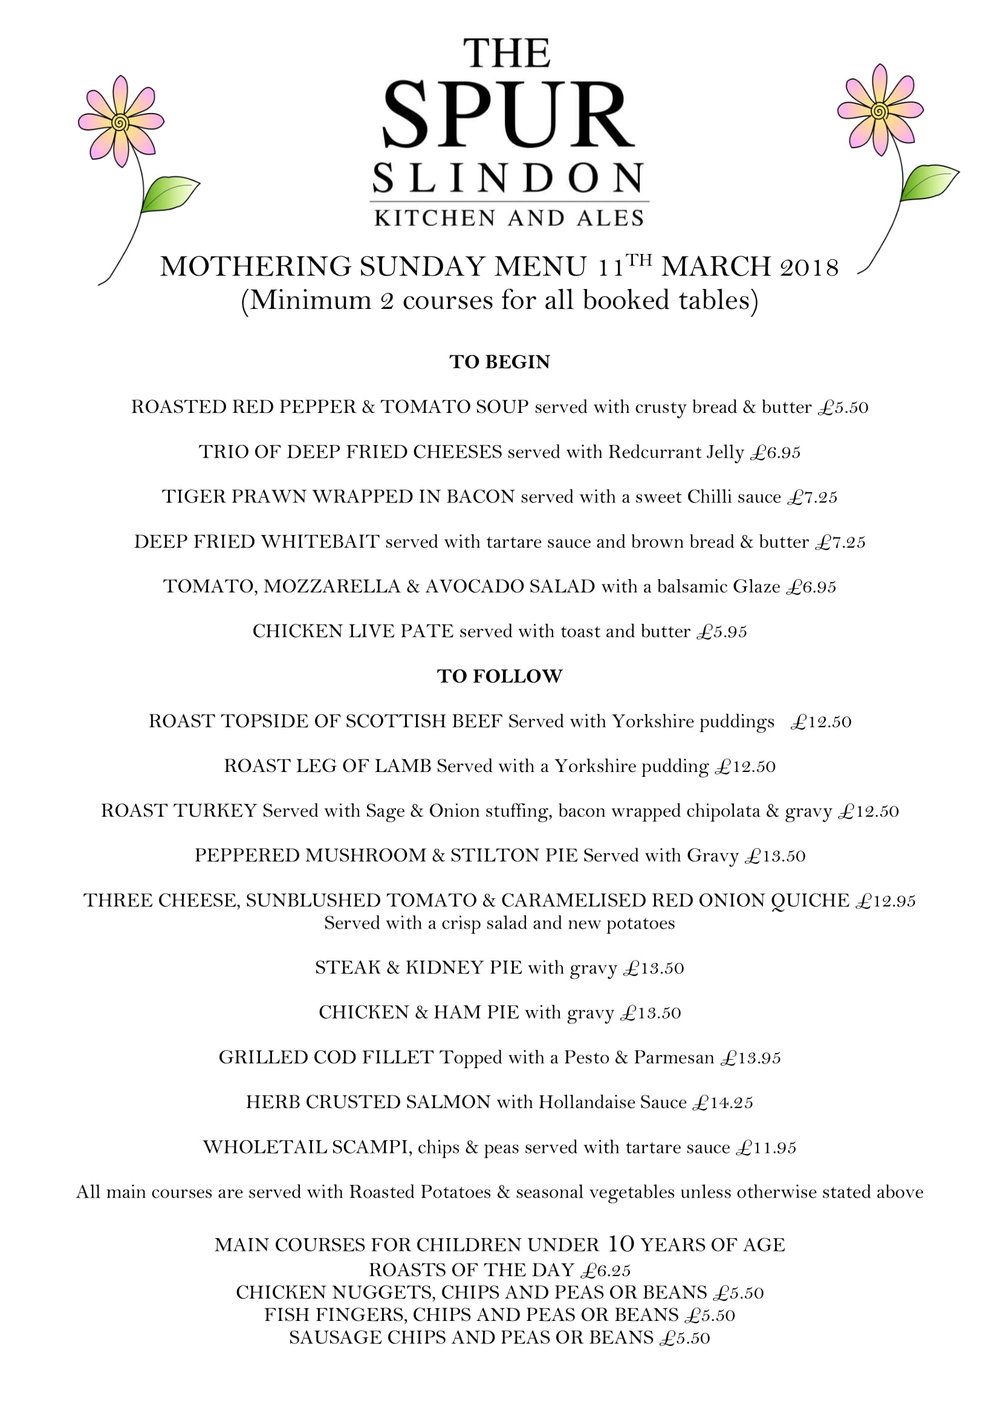 MOTHERING SUNDAY MENU 11TH MARCH   2018-1.jpg